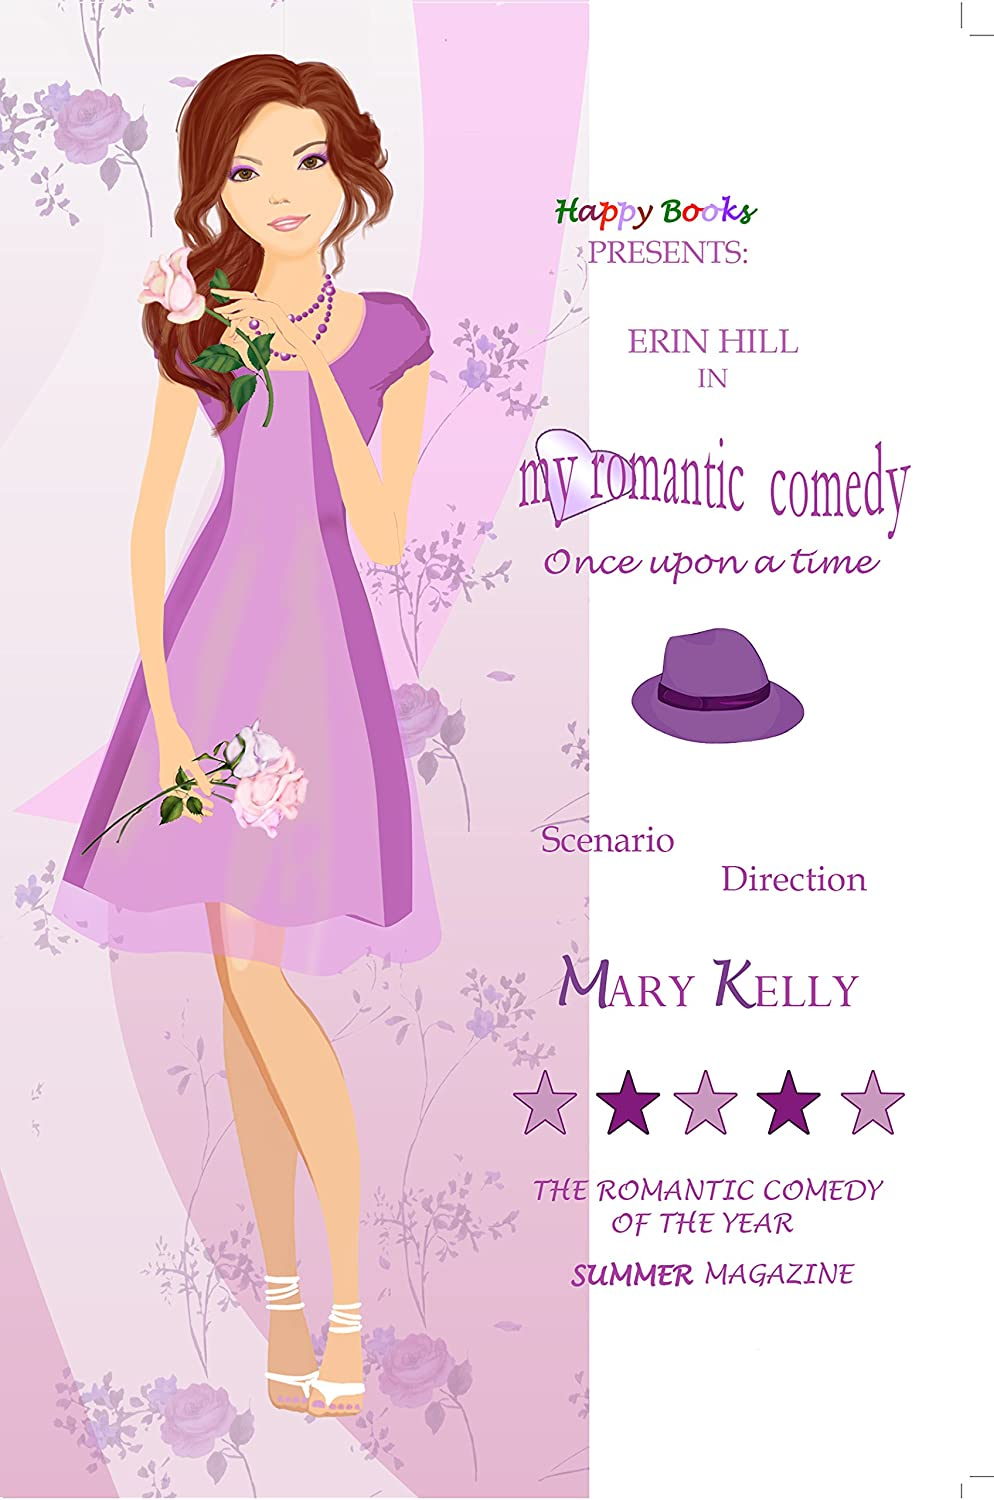 My Romantic Comedy: Once Upon a Time Book 1 (A delicious romantic comedy) (Happy Books) by Mary Kelly